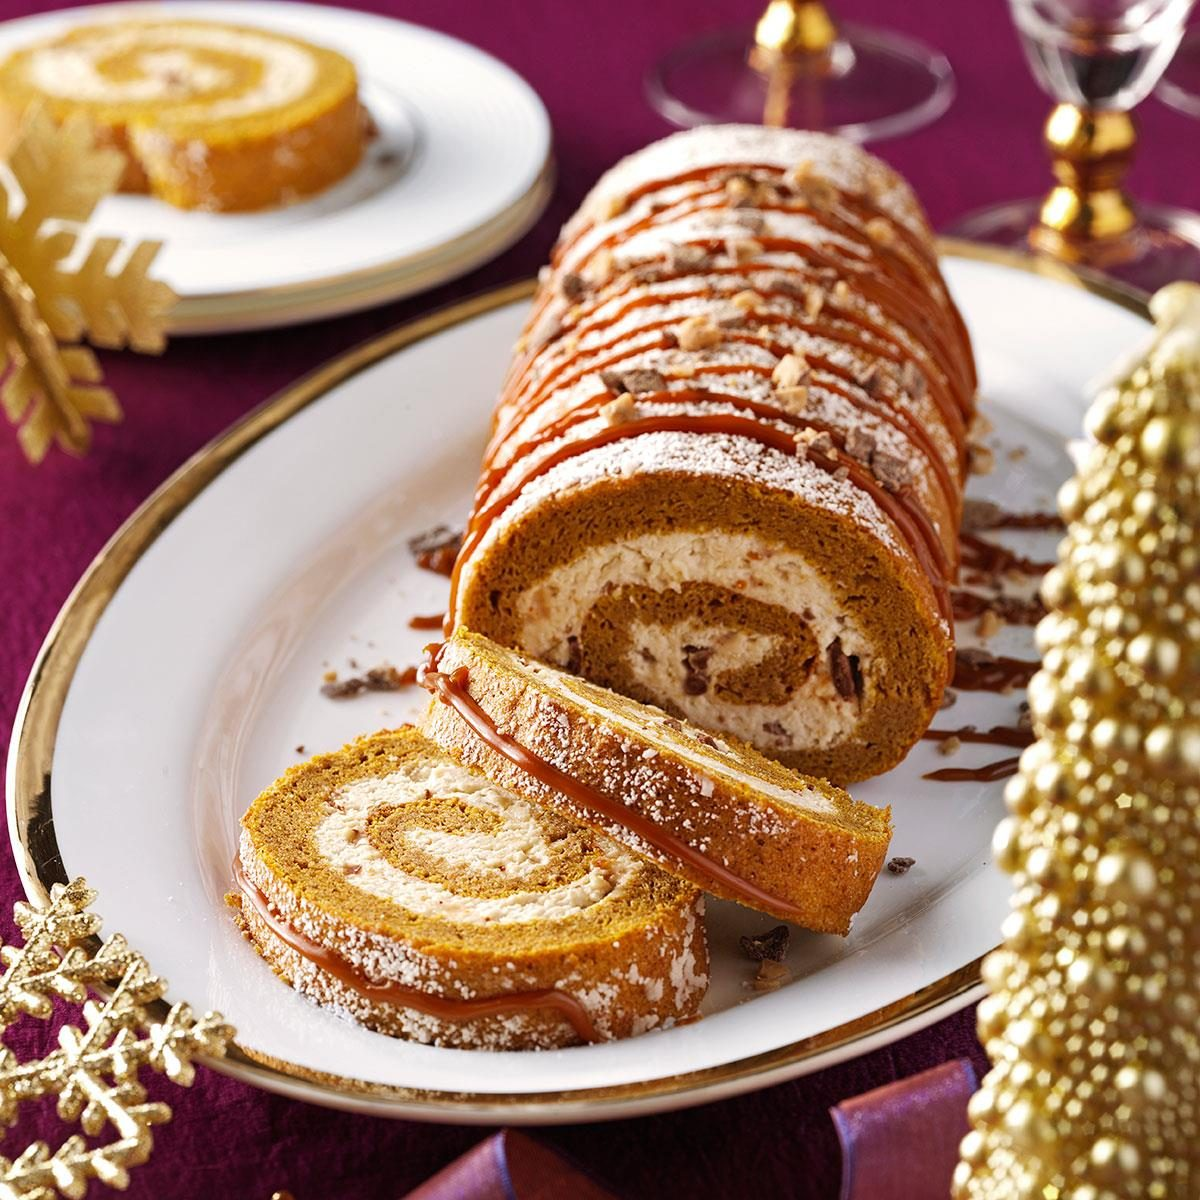 Jelly Roll Recipe With Box Cake Mix